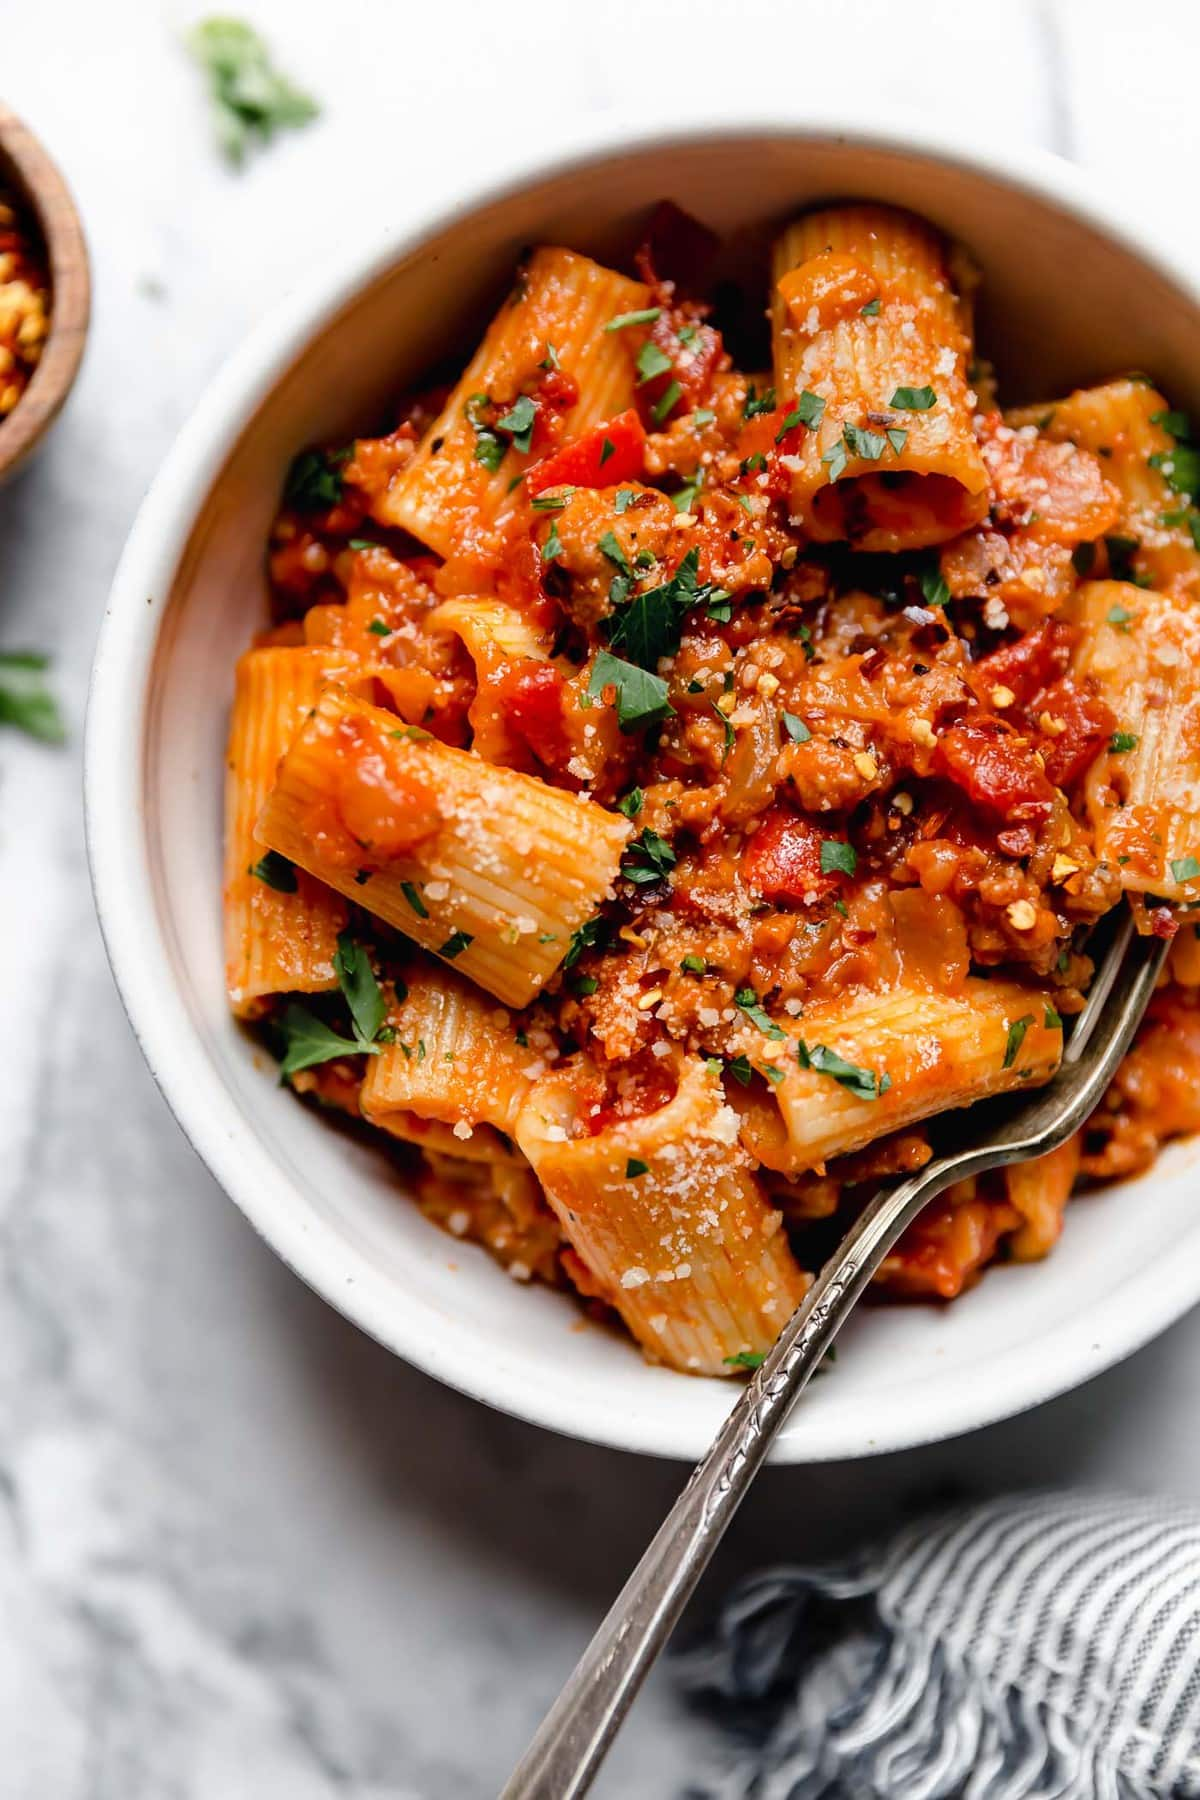 white bowl with rigatoni noodles in red Italian sausage and peppers sauce.